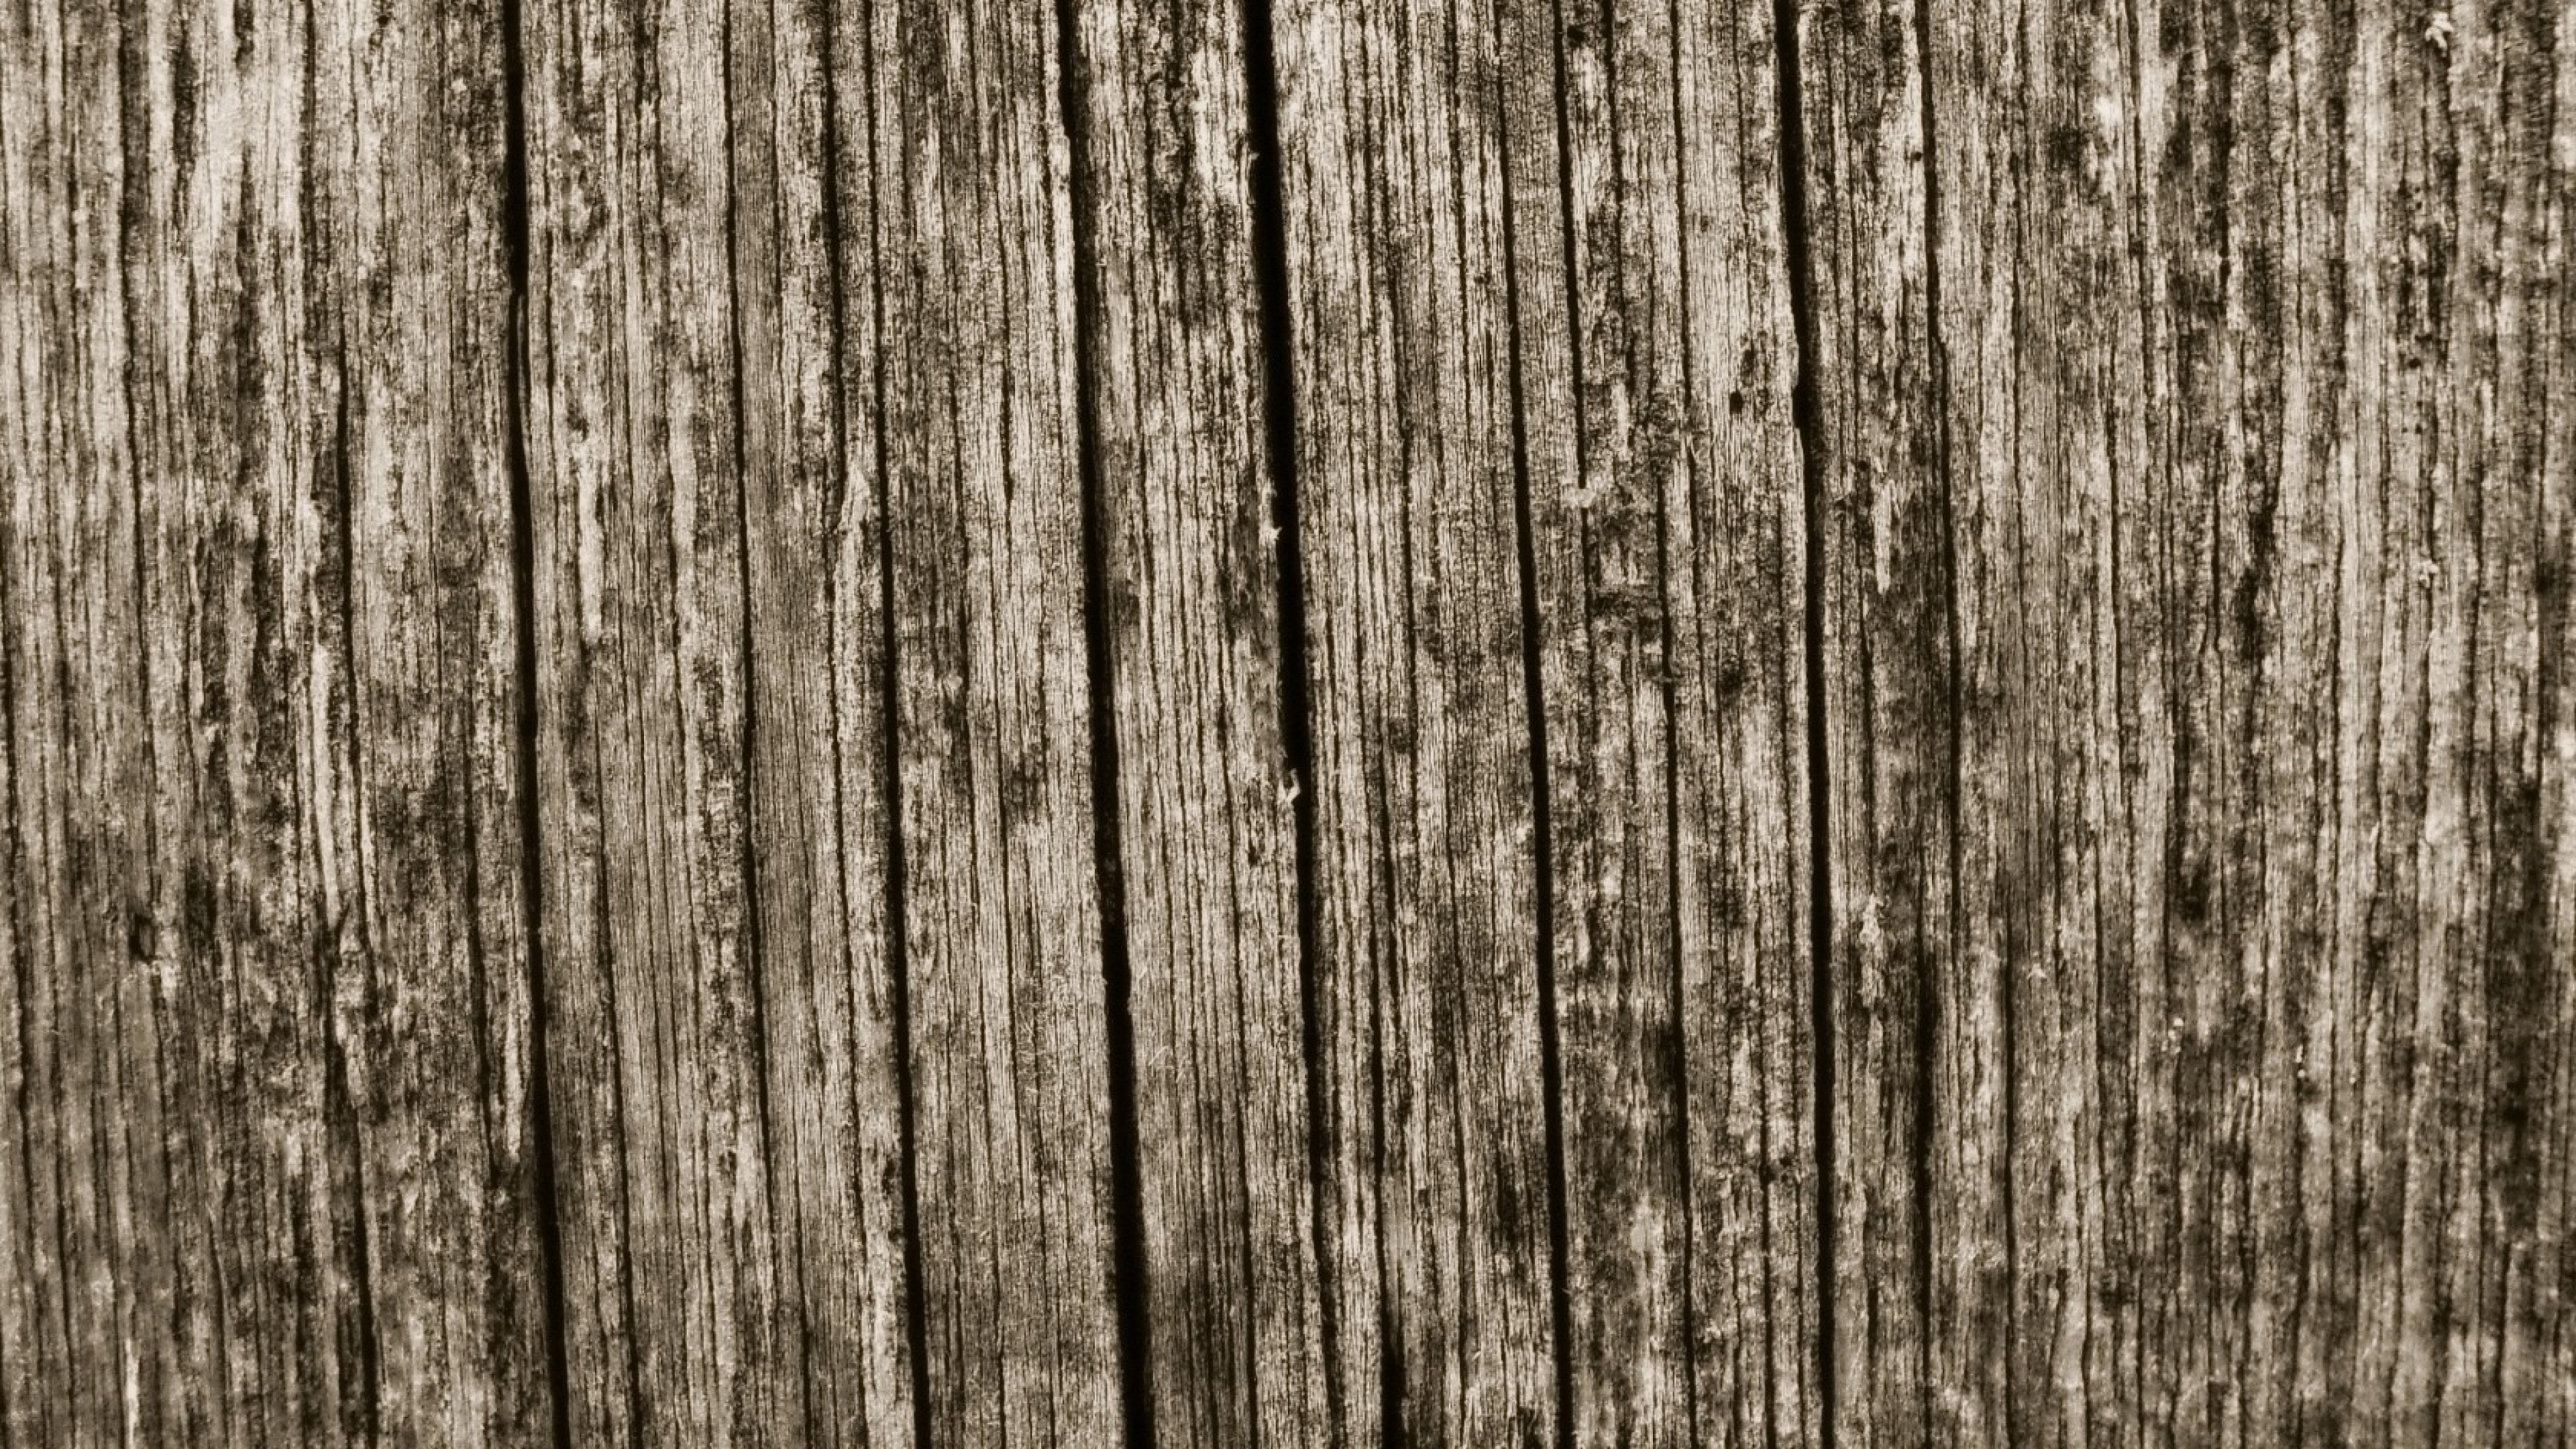 Wood Backgrouns 3840x2160